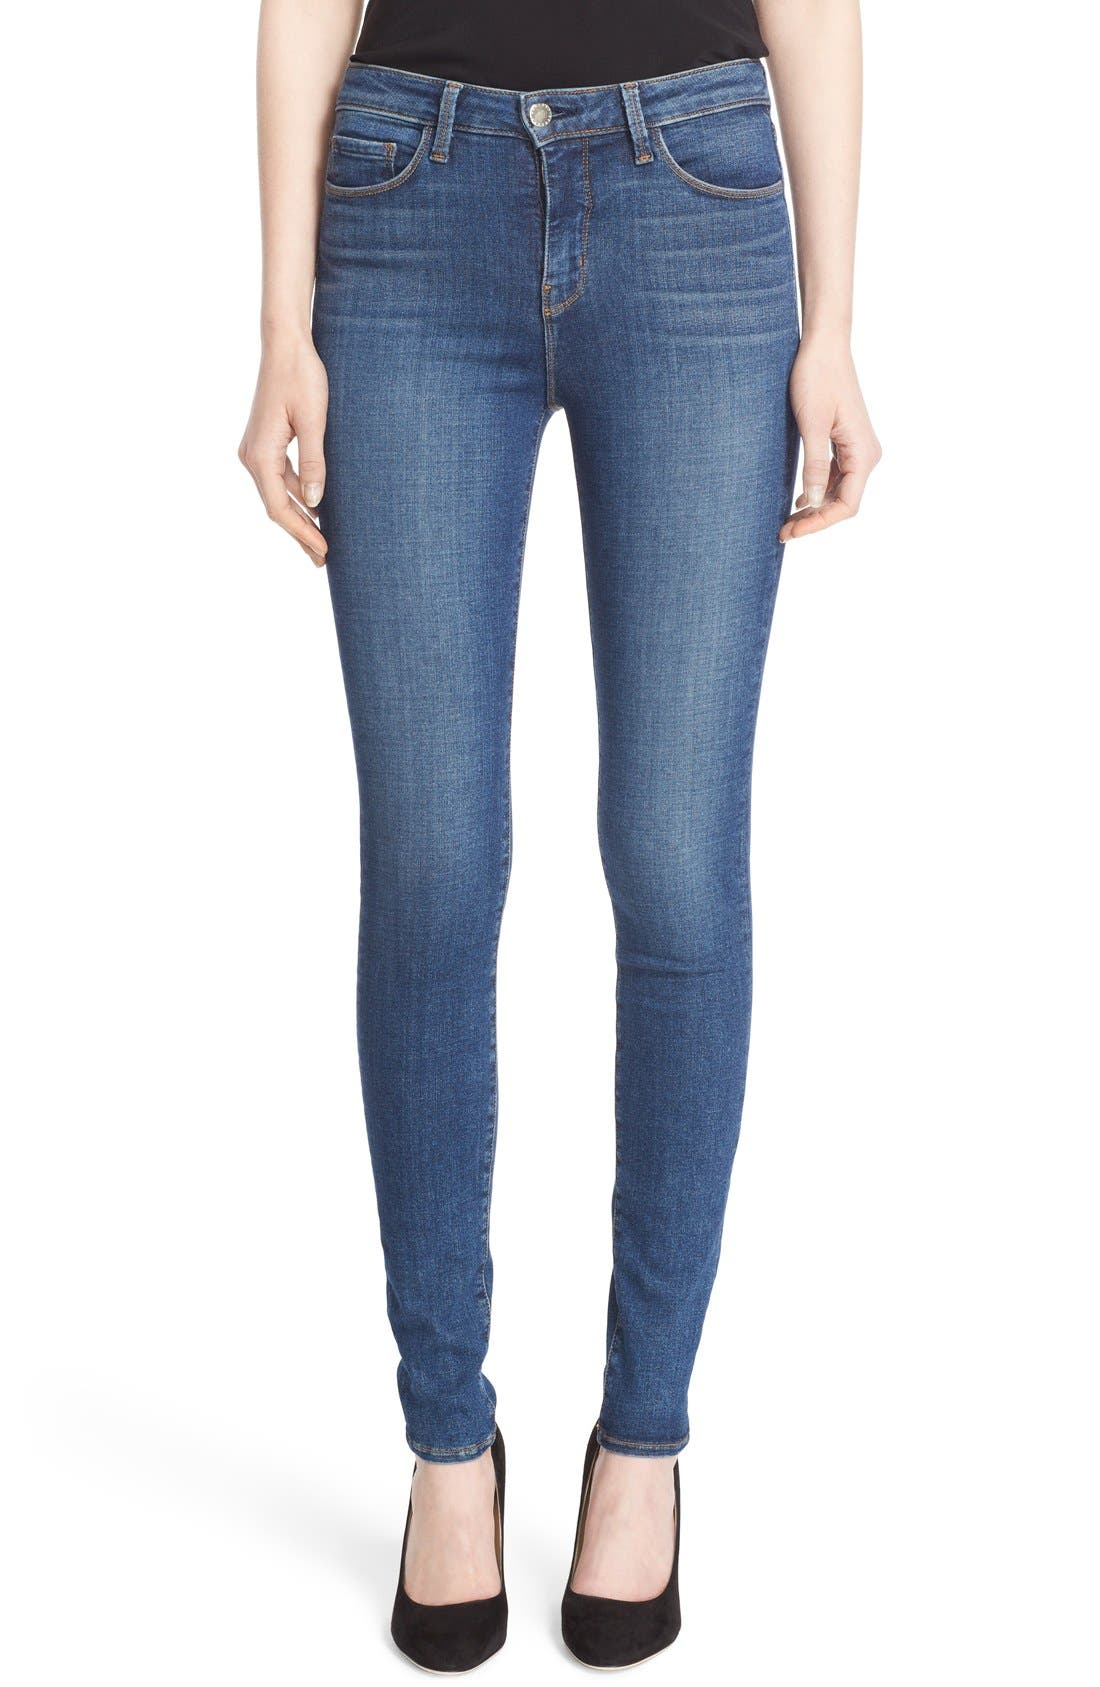 '30' High Rise Skinny Jeans,                             Main thumbnail 1, color,                             DARK VINTAGE